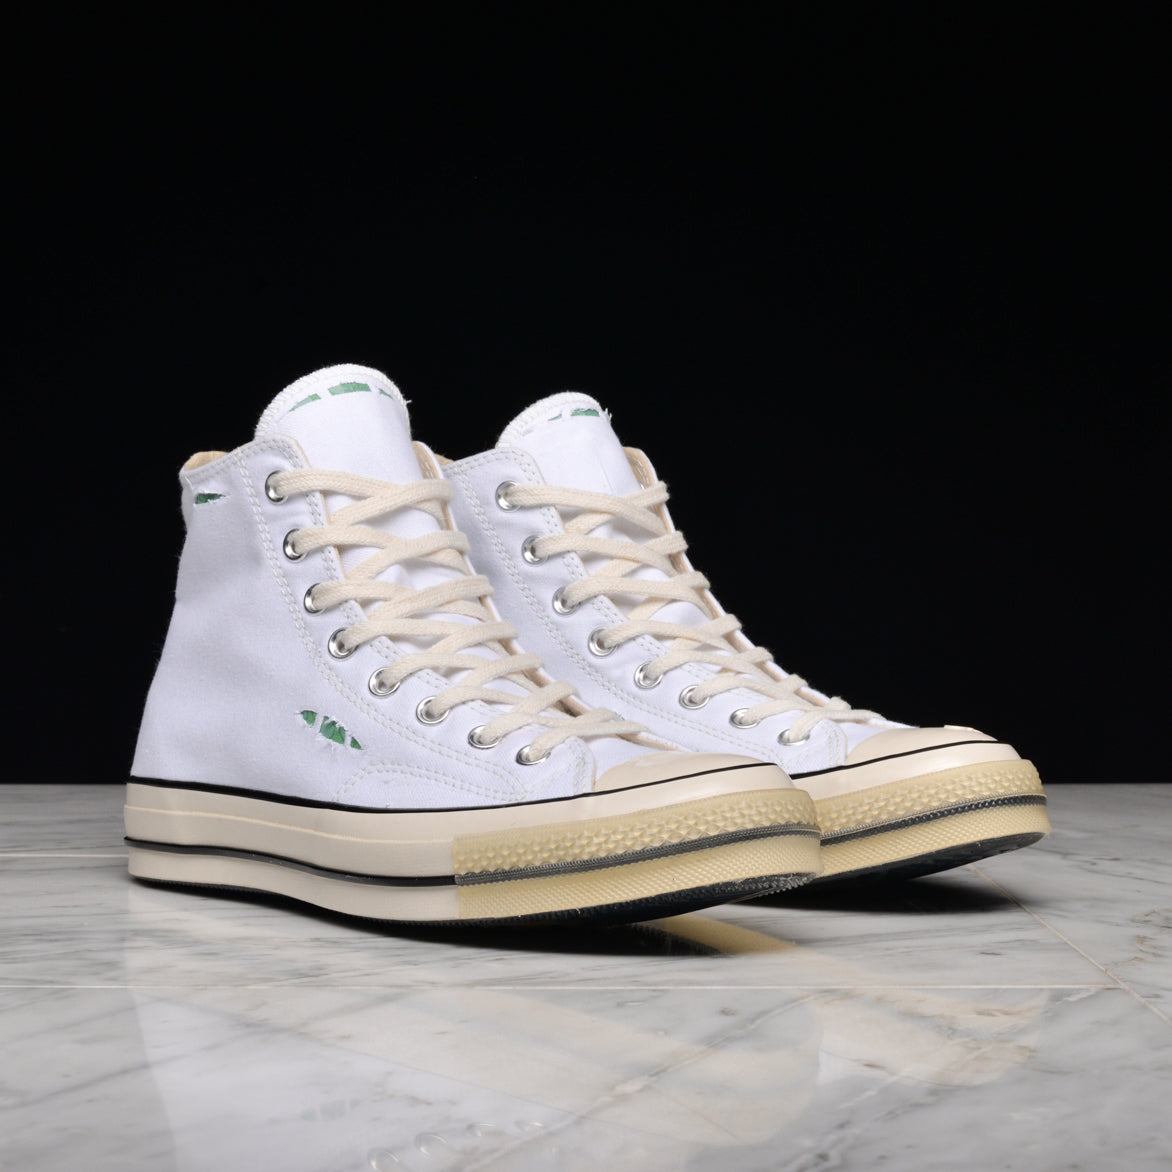 "DR. WOO X CONVERSE CHUCK 70 HI ""WEAR TO REVEAL"" - WHITE"